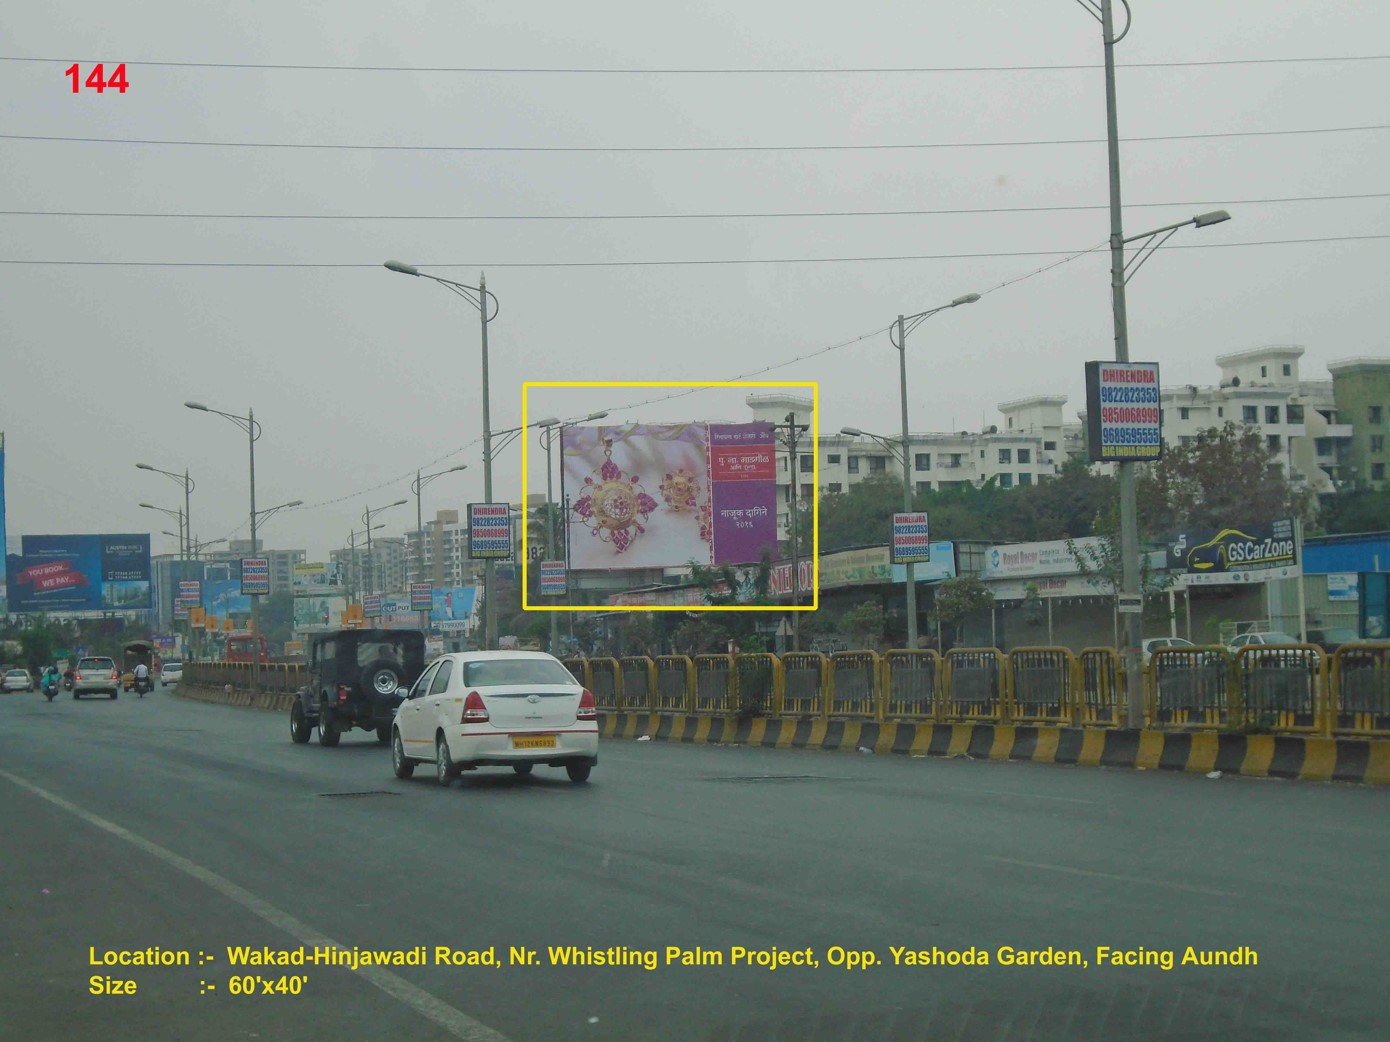 Wakad Road, Nr. Whistling Palm Project, Pune